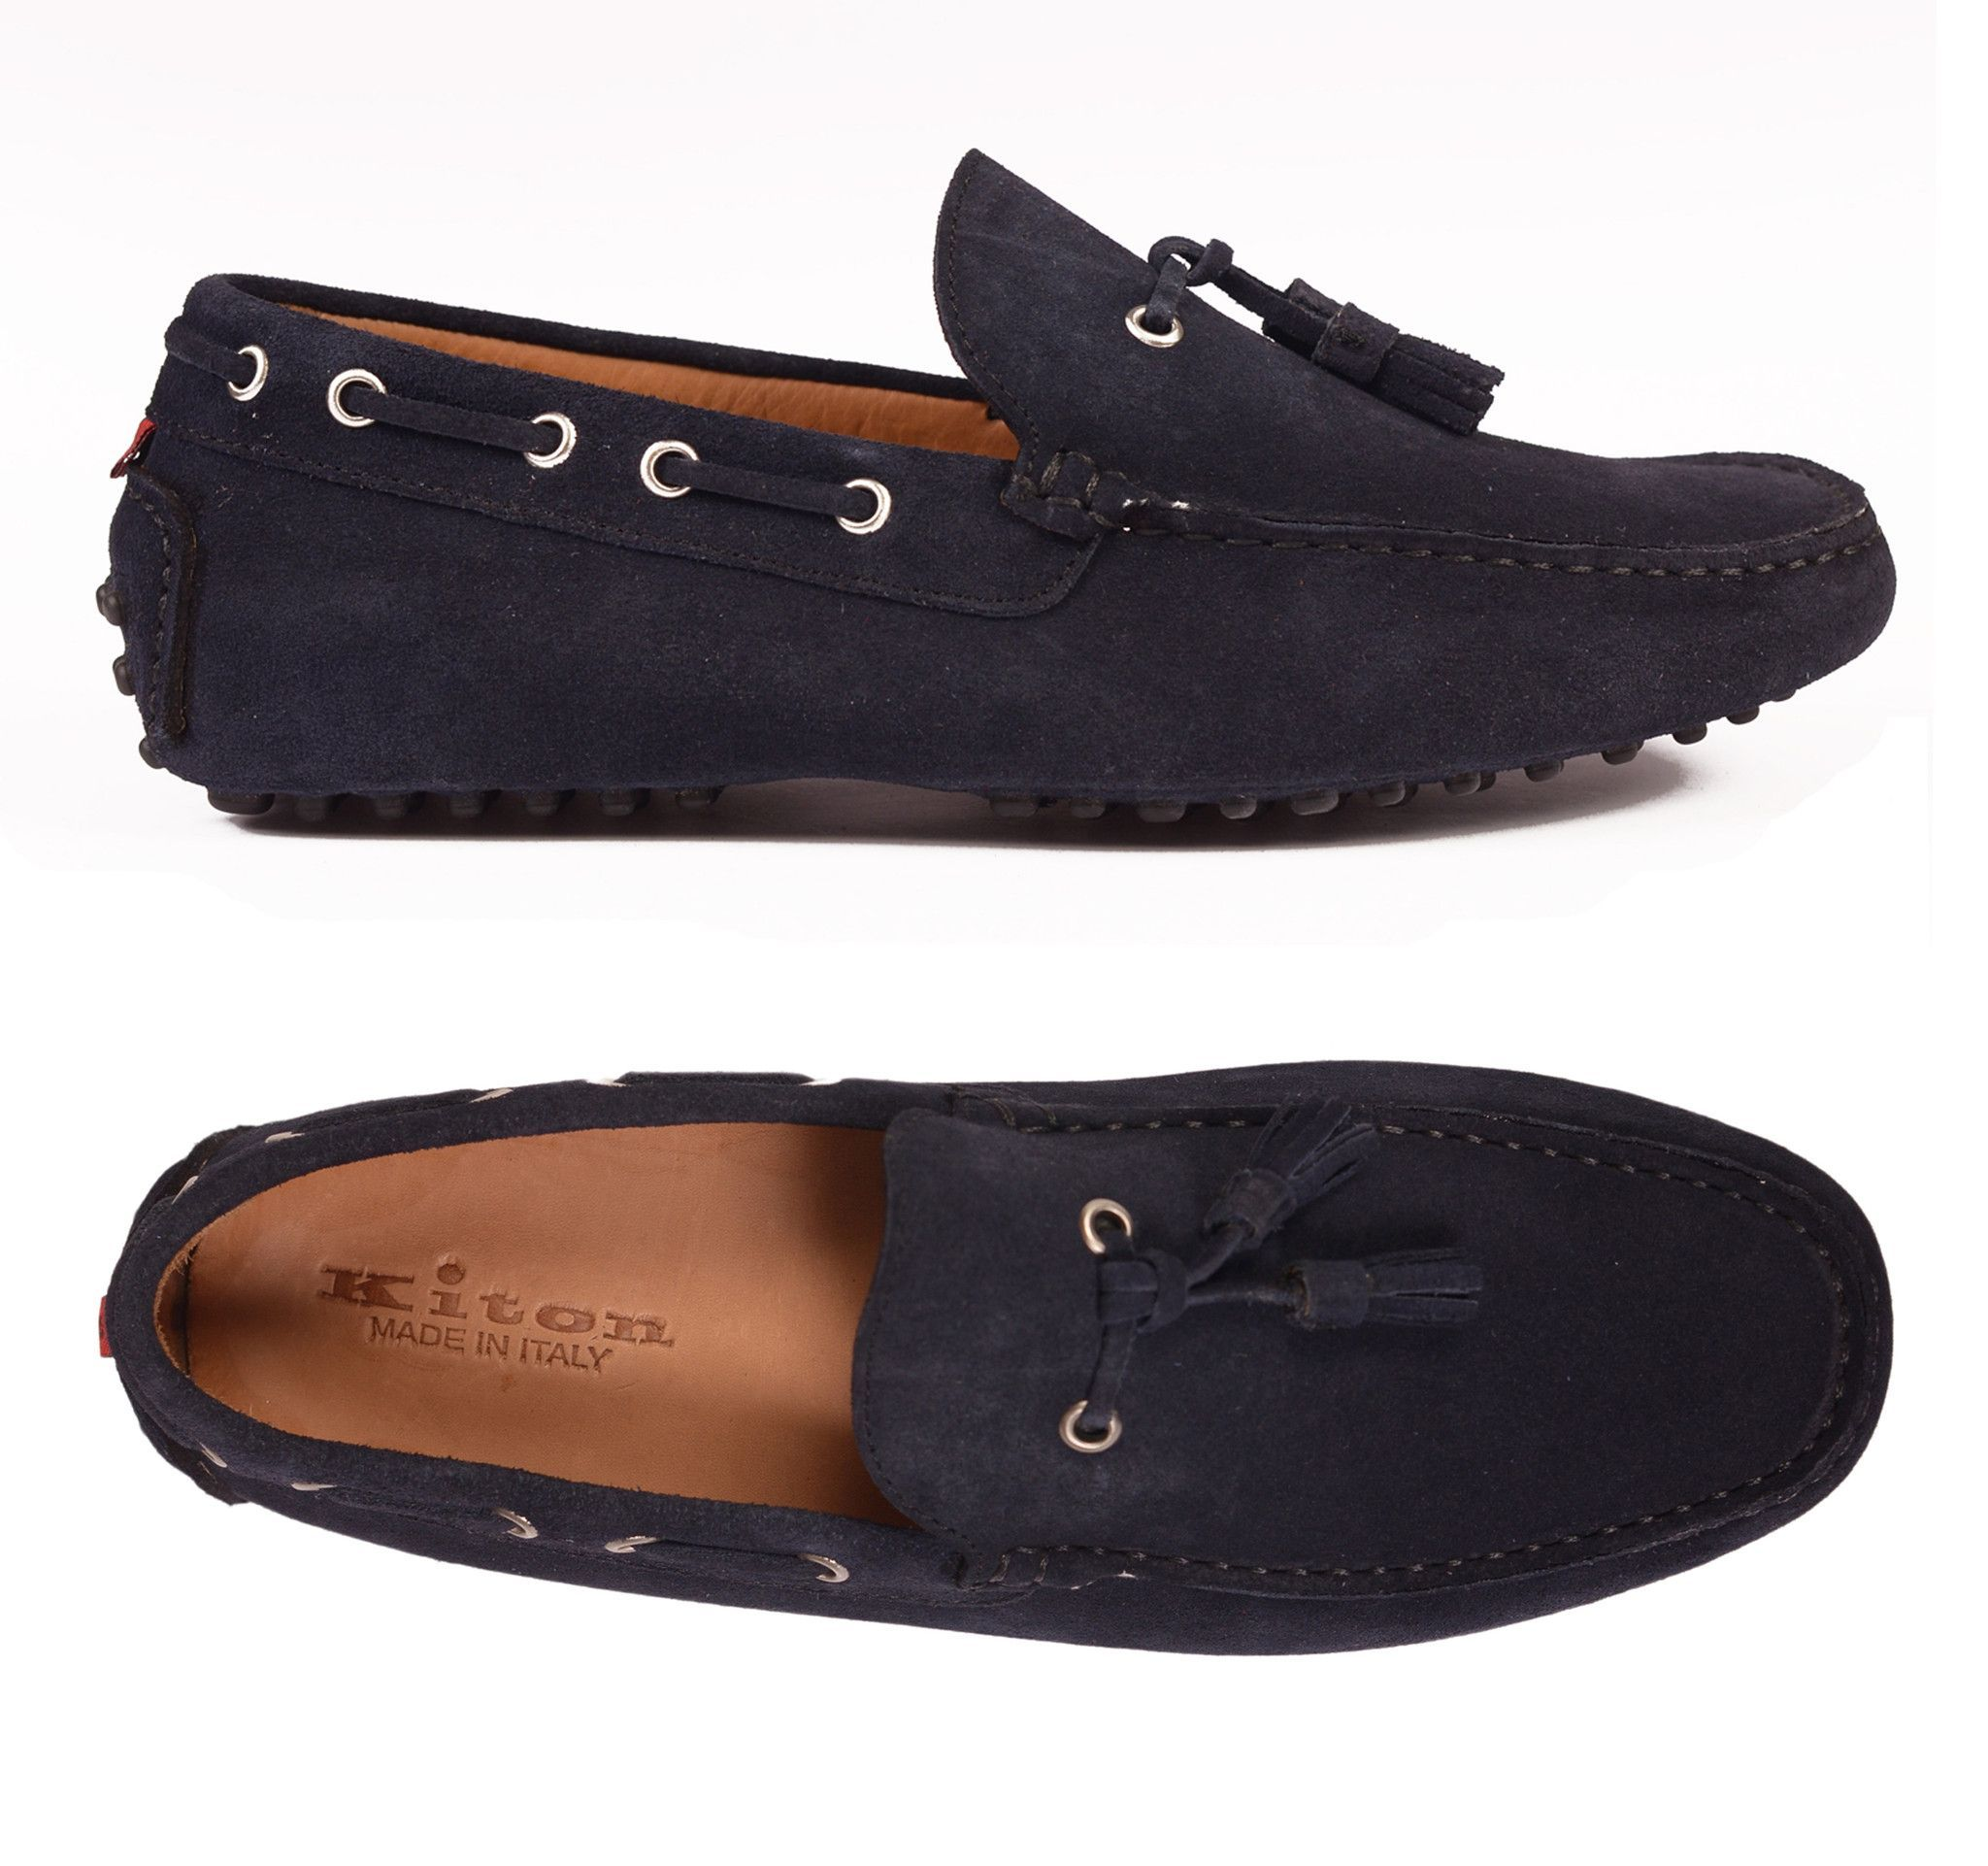 KITON NAPOLI Navy Blue Suede Tassel Loafers Driving Car Shoes Moccasins NEW